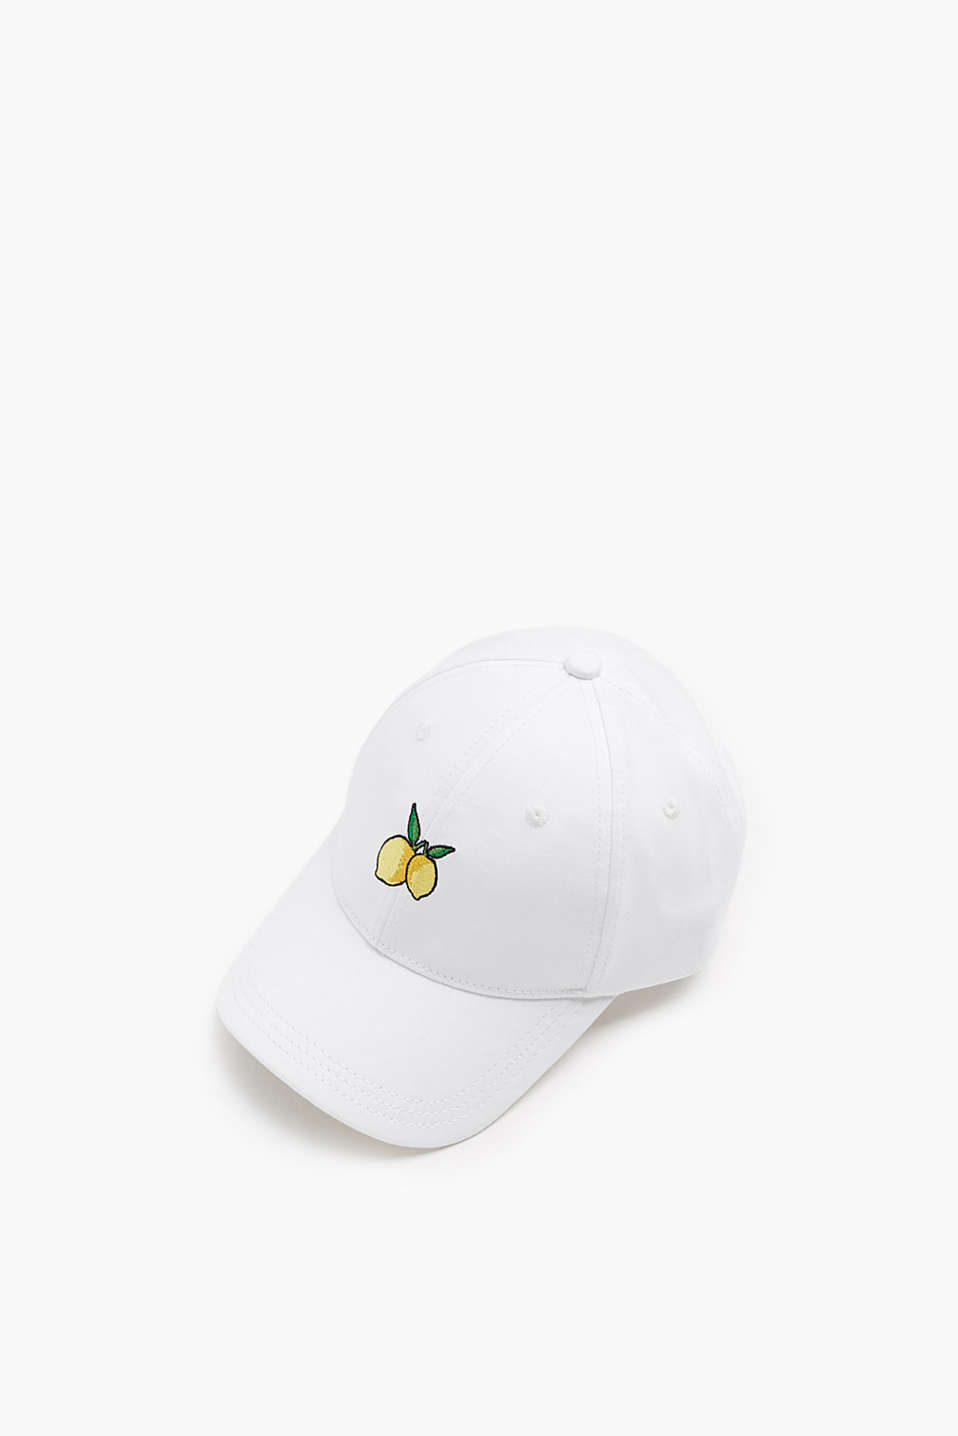 Baseball cap in comfortable blended cotton with lemon embroidery